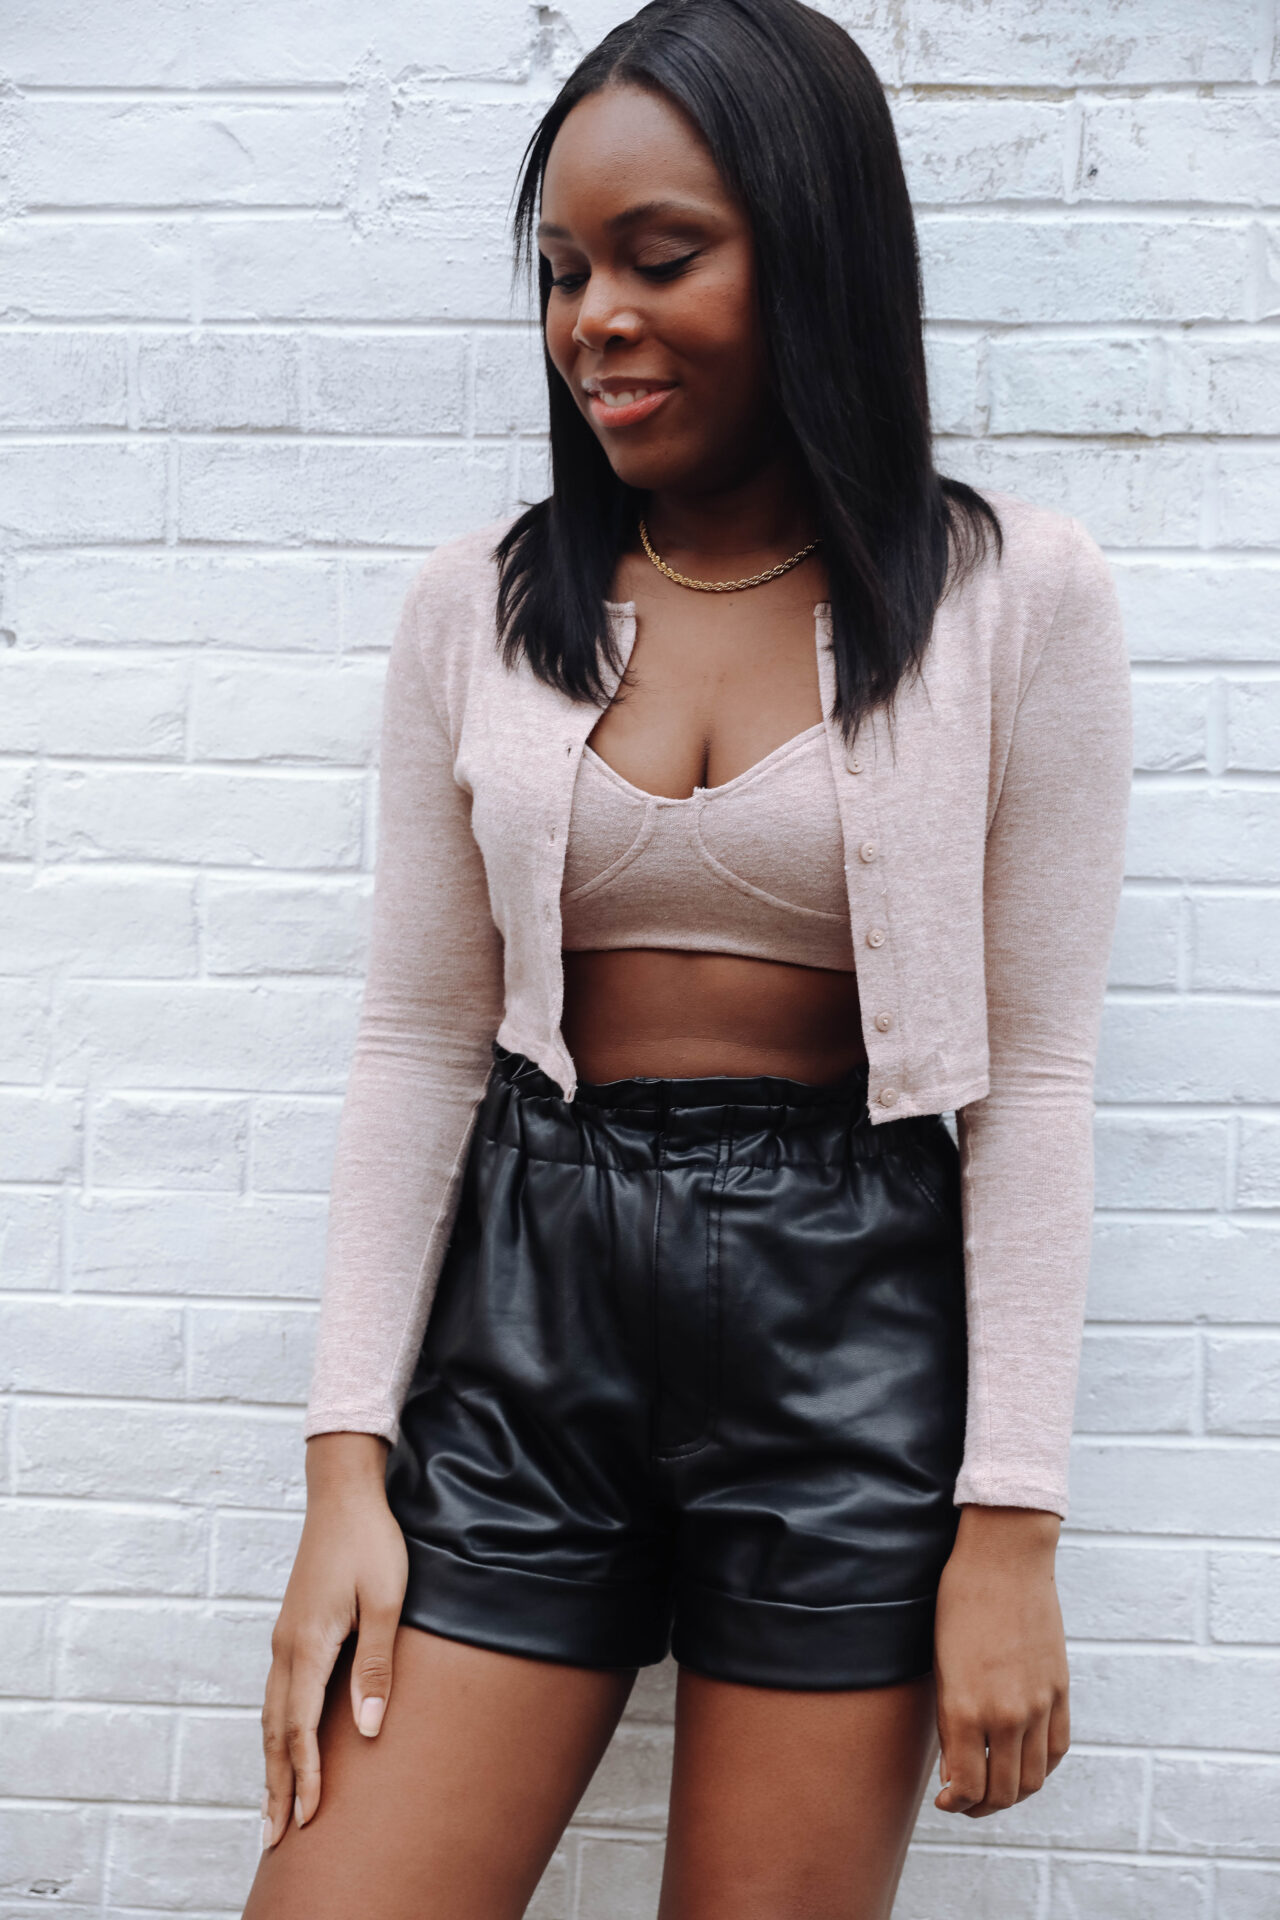 How to wear leather shorts in the fall - le fab chic - crop